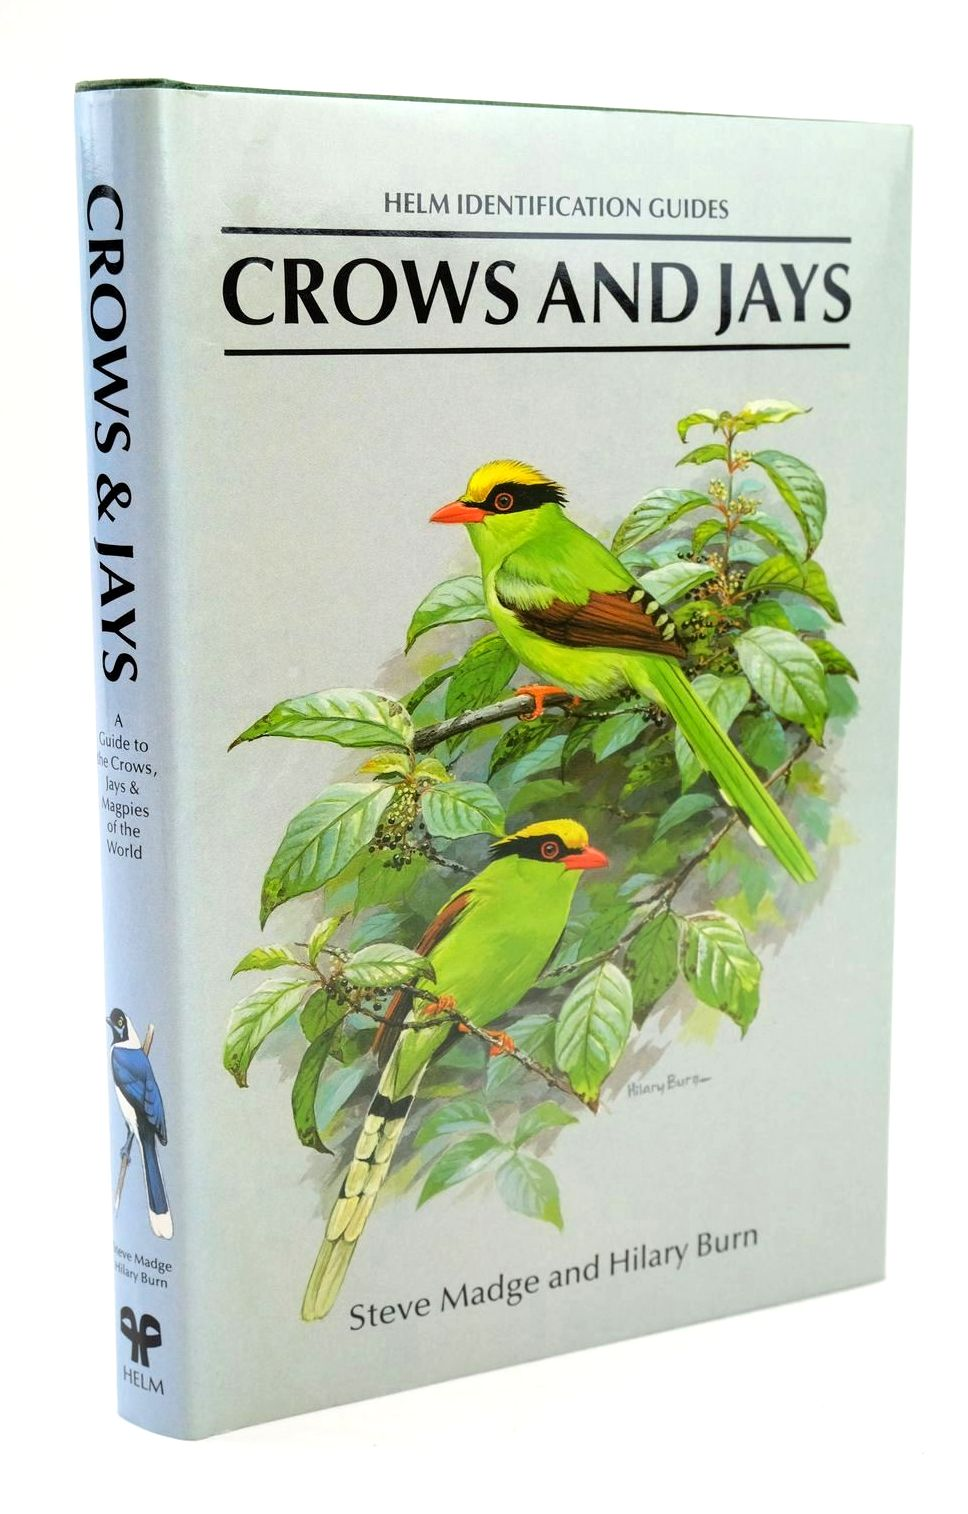 Photo of CROWS AND JAYS (HELM IDENTIFICATION GUIDES) written by Madge, Steve illustrated by Burn, Hilary published by Christopher Helm, A. & C. Black Ltd. (STOCK CODE: 1319297)  for sale by Stella & Rose's Books